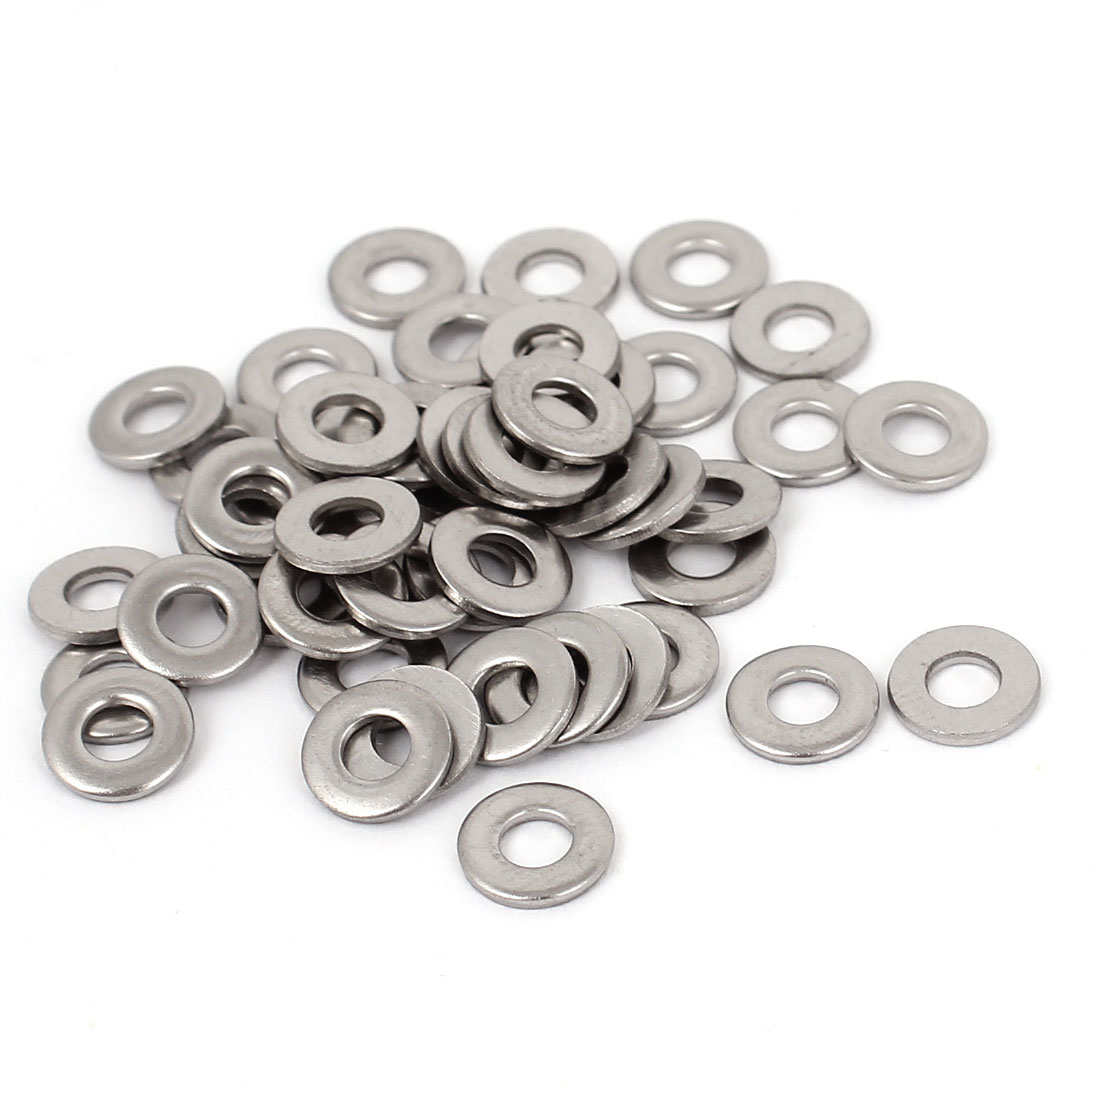 50pcs 316 Stainless Steel Flat Washer #6 Plain Spacer for Screws Bolts